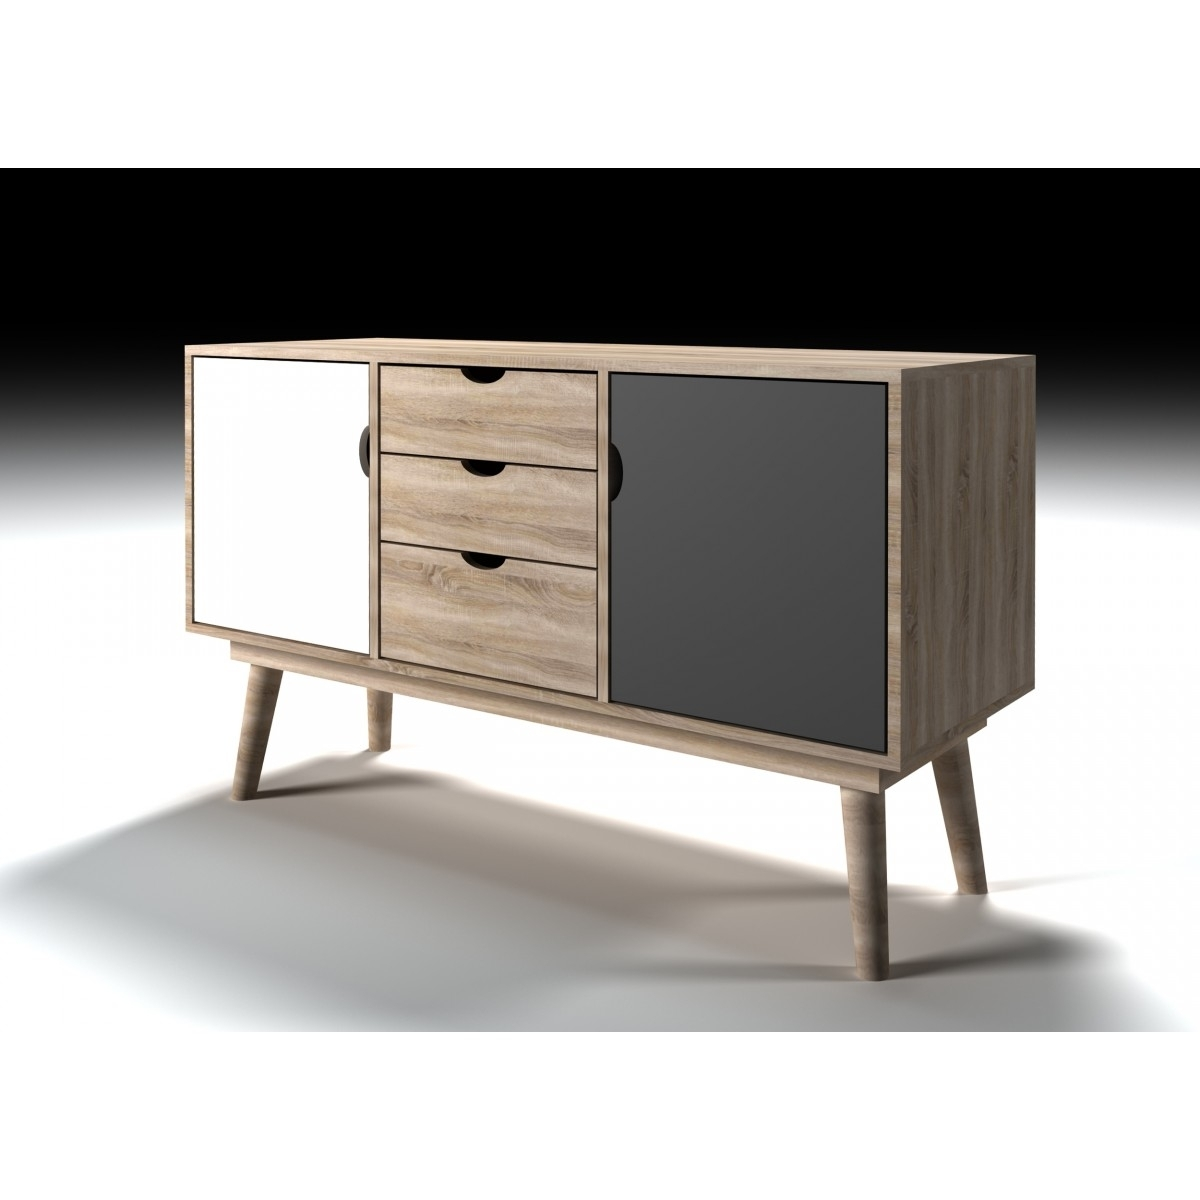 Inspiration about Lpd Scandi 2 Door 2 Drawer Oak Sideboard – White Or Grey – Home Done Inside Newest 3 Drawer/2 Door White Wash Sideboards (#16 of 20)